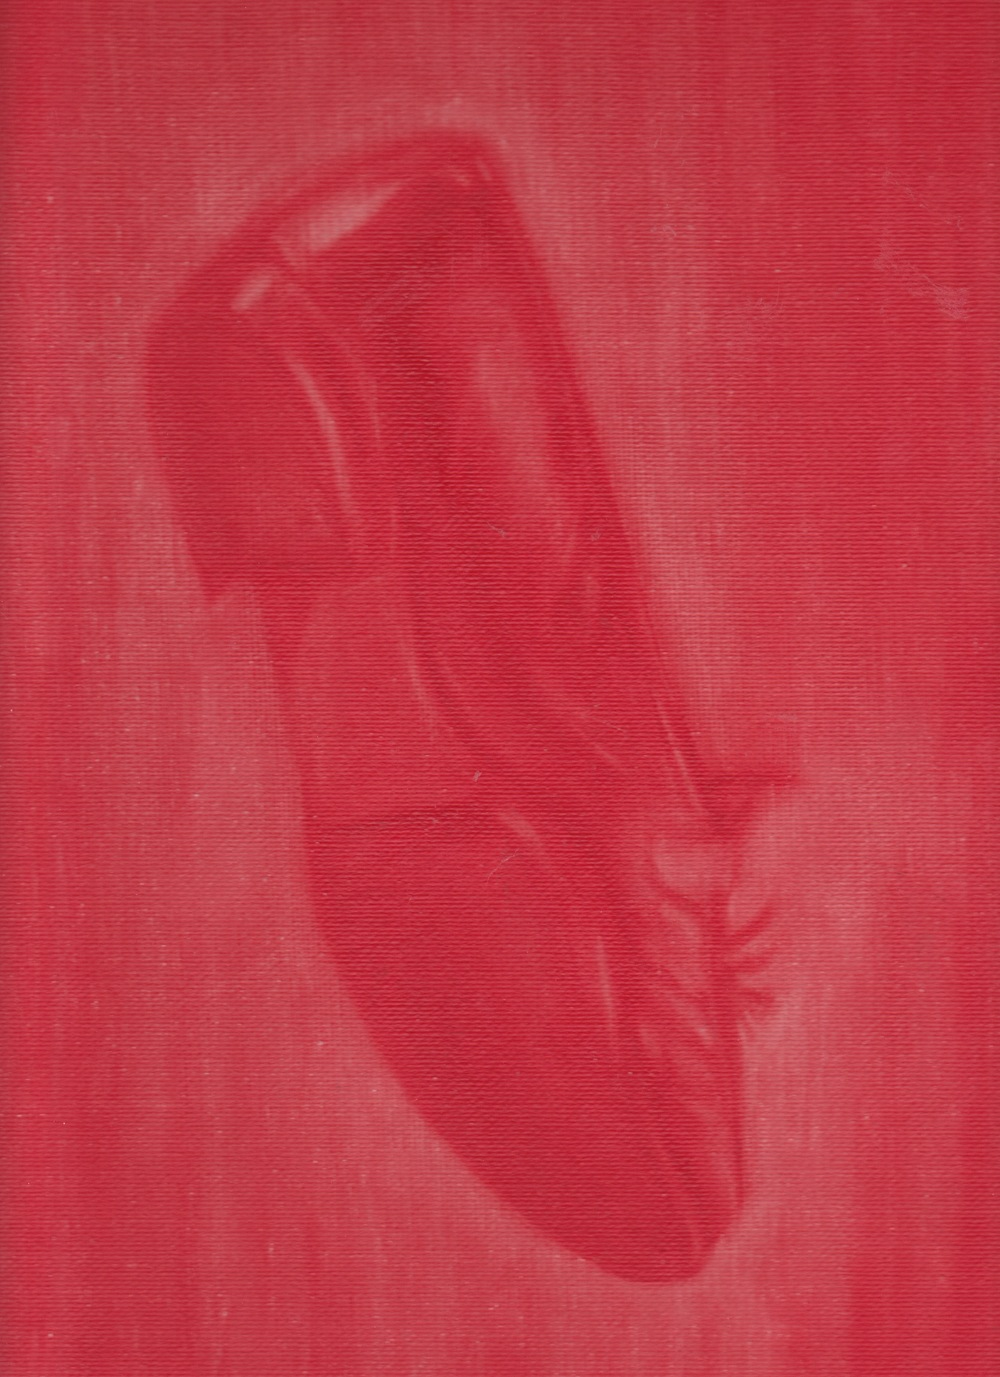 Akai Kutsu (The Red Shoe), 2015. Oil on Canvas.